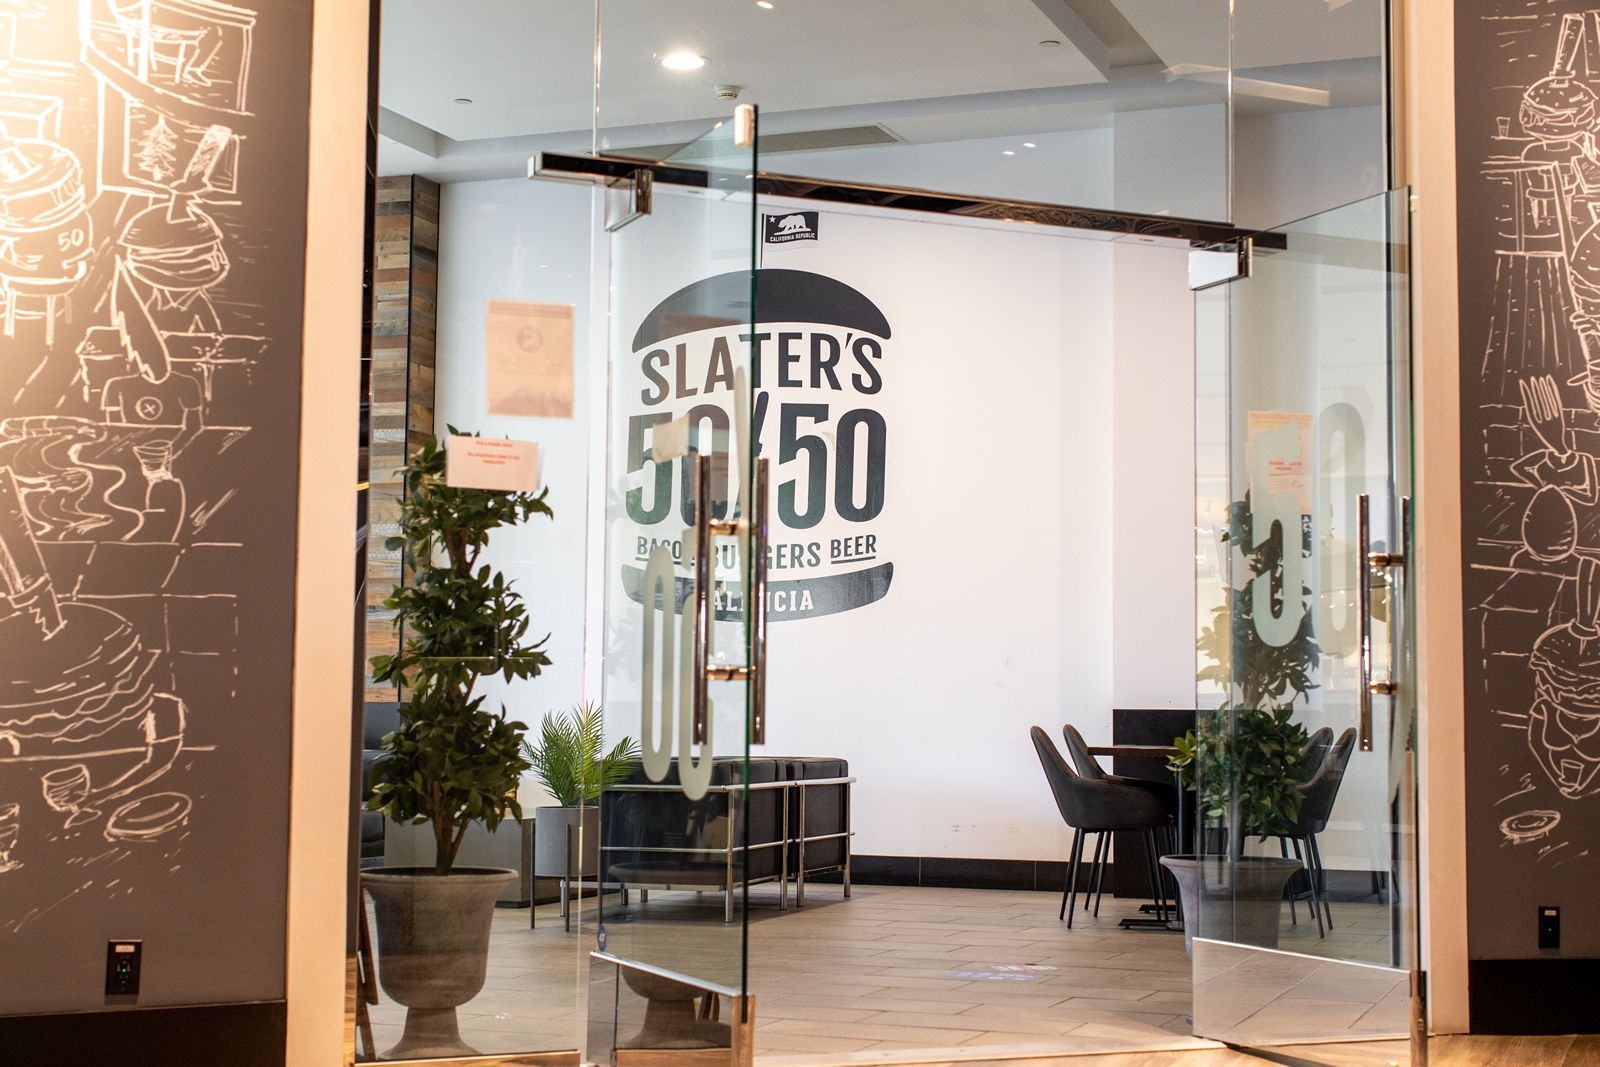 Slater's 50/50 Valencia is celebrating their 1 year anniversary with a full week of festivities from Monday, June 28th - Sunday, July 4th.